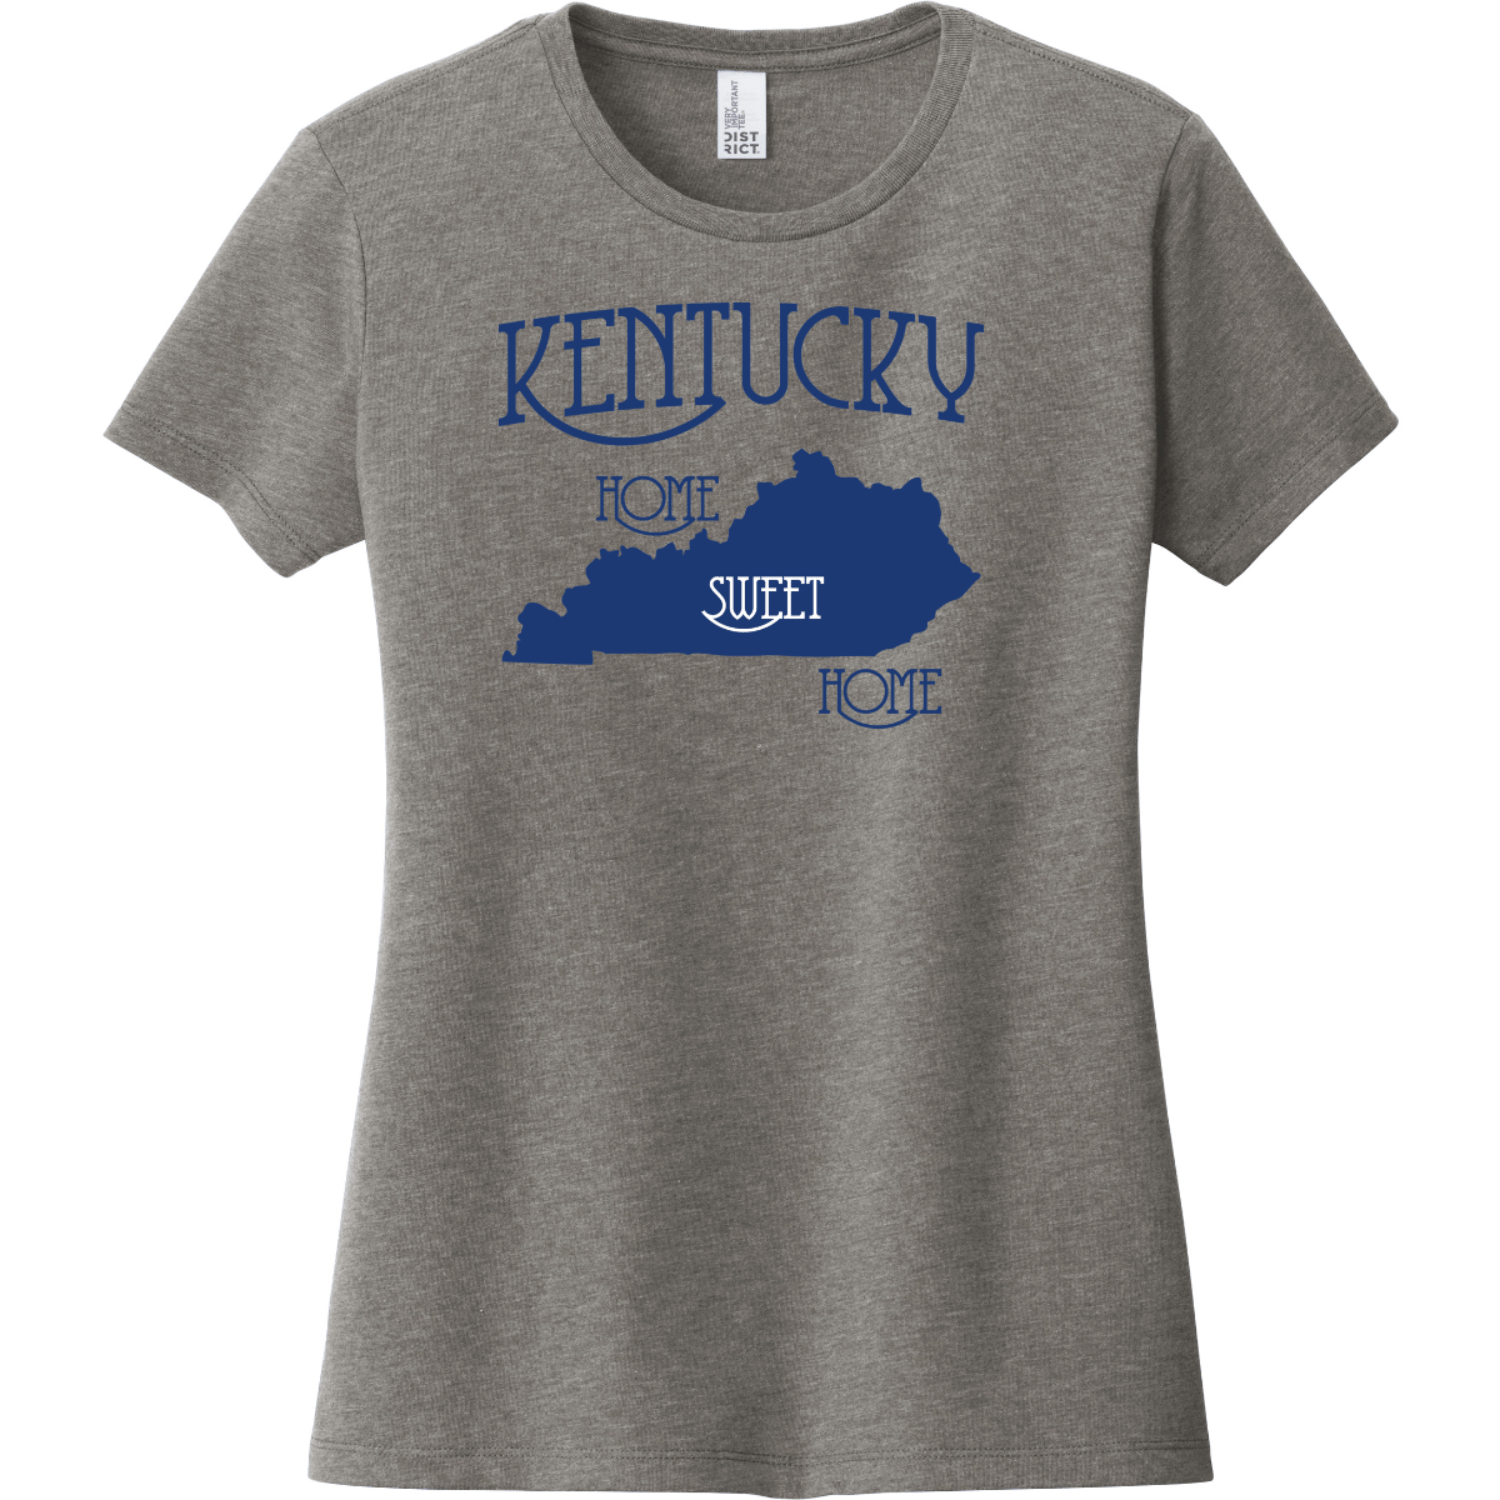 Kentucky Country Home Sweet Home T-Shirt Gray Frost District Women's Very Important Tee DT6002